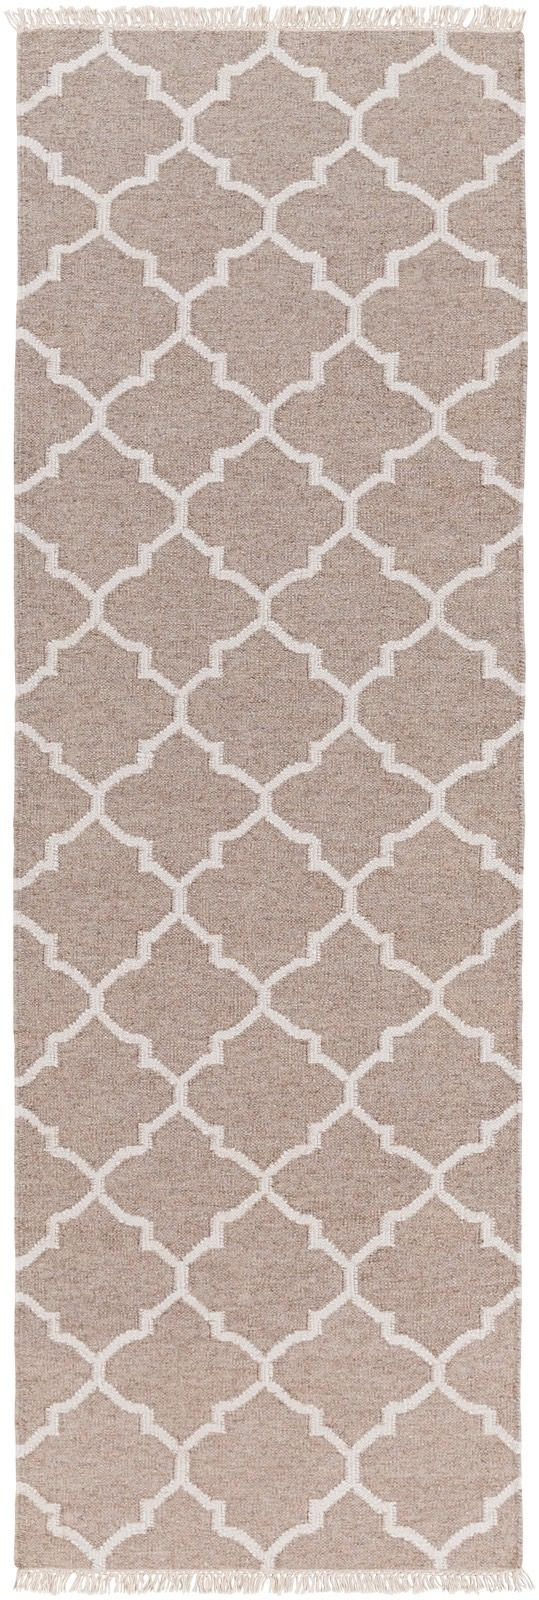 surya isle contemporary area rug collection